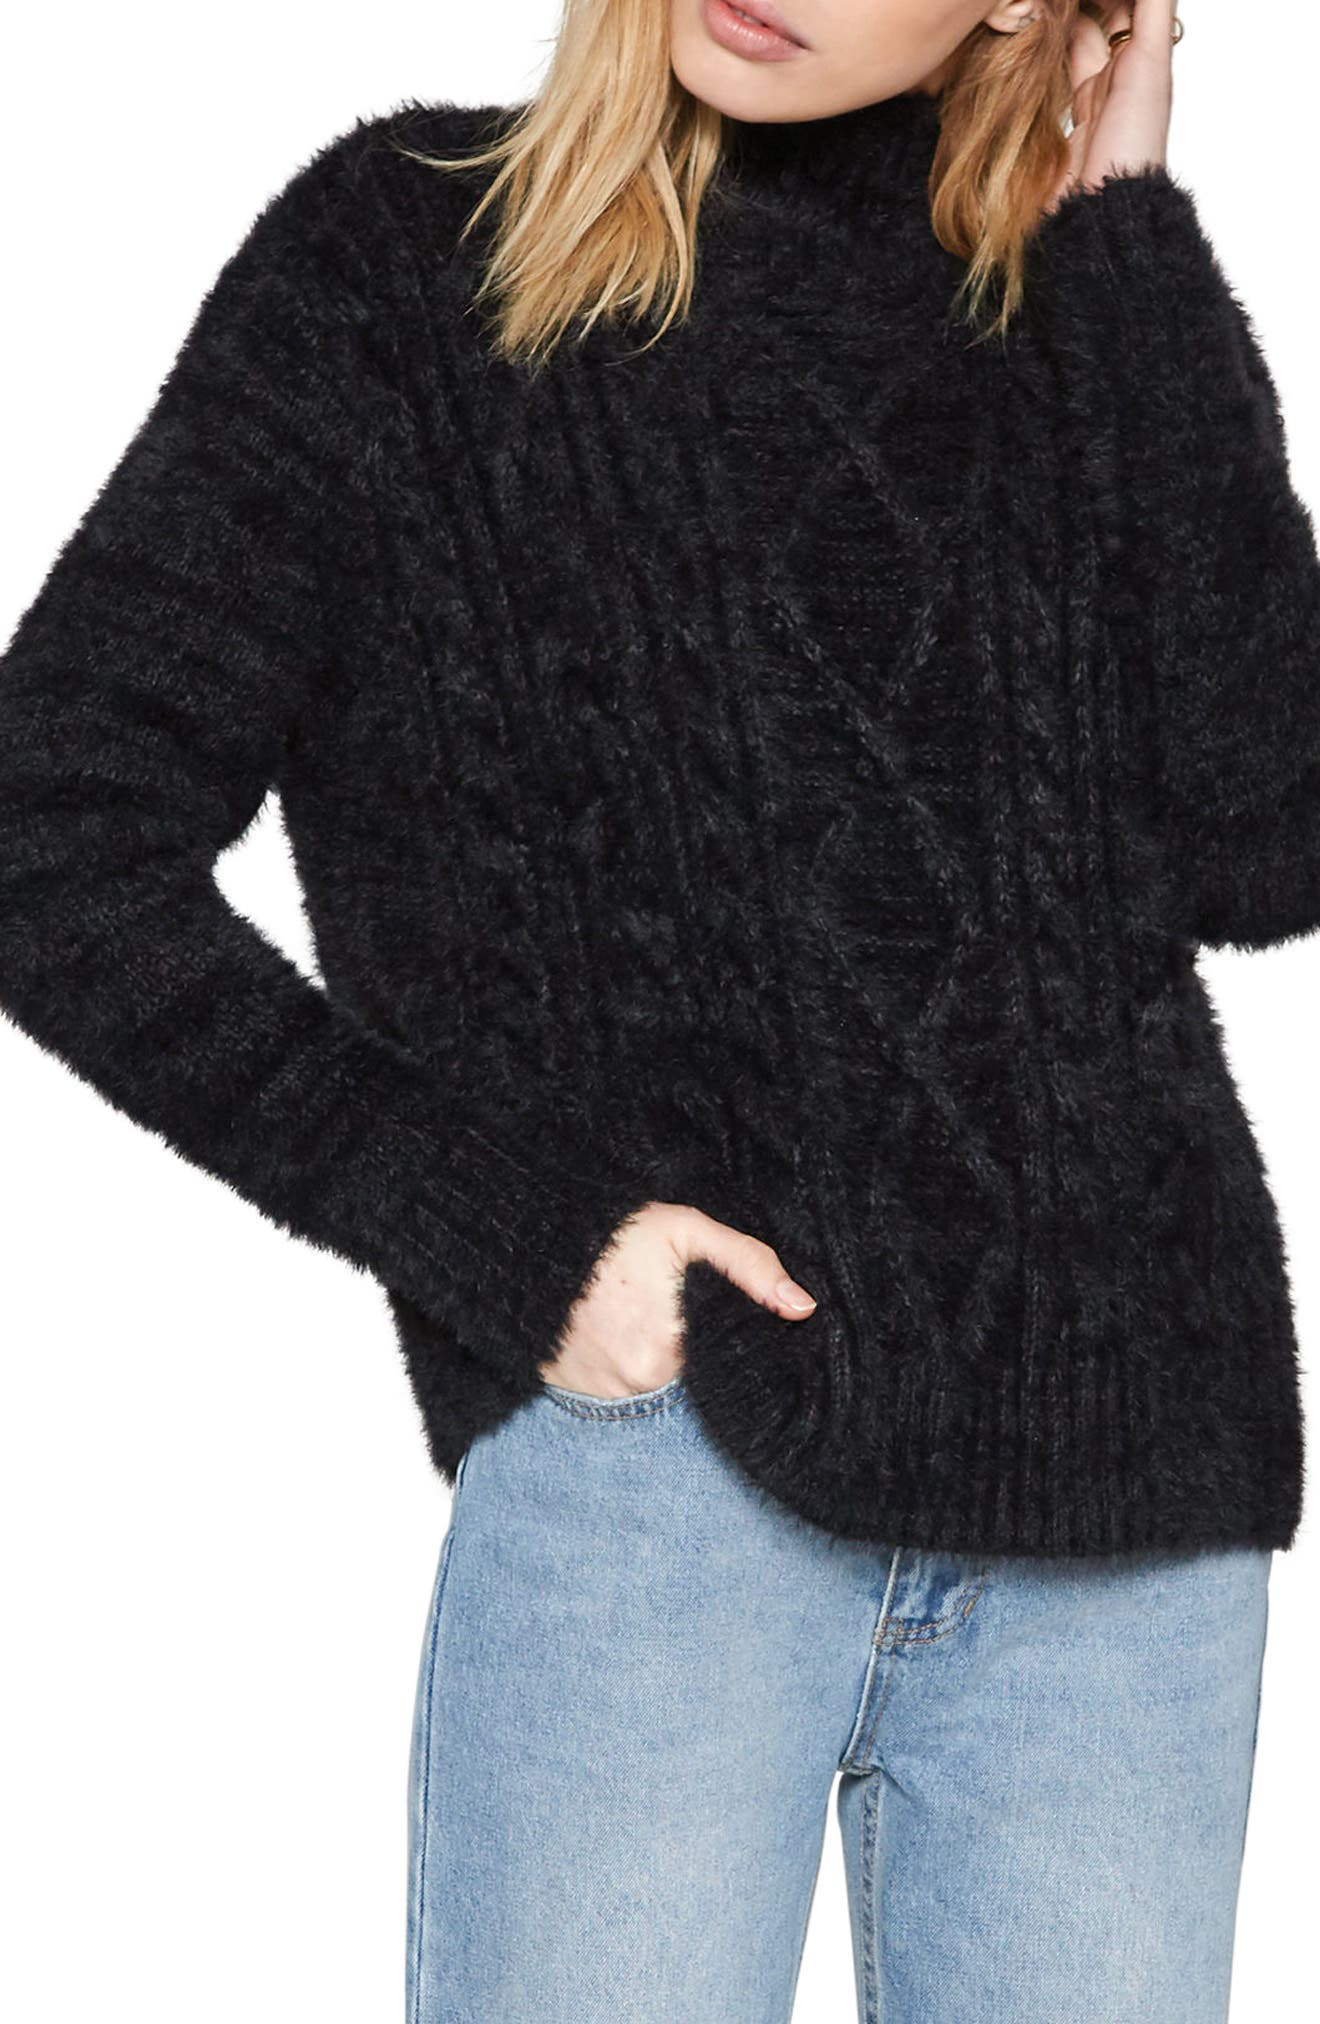 Alternate Image 1 Selected - Amuse Society Cool Winds Cable Knit Sweater